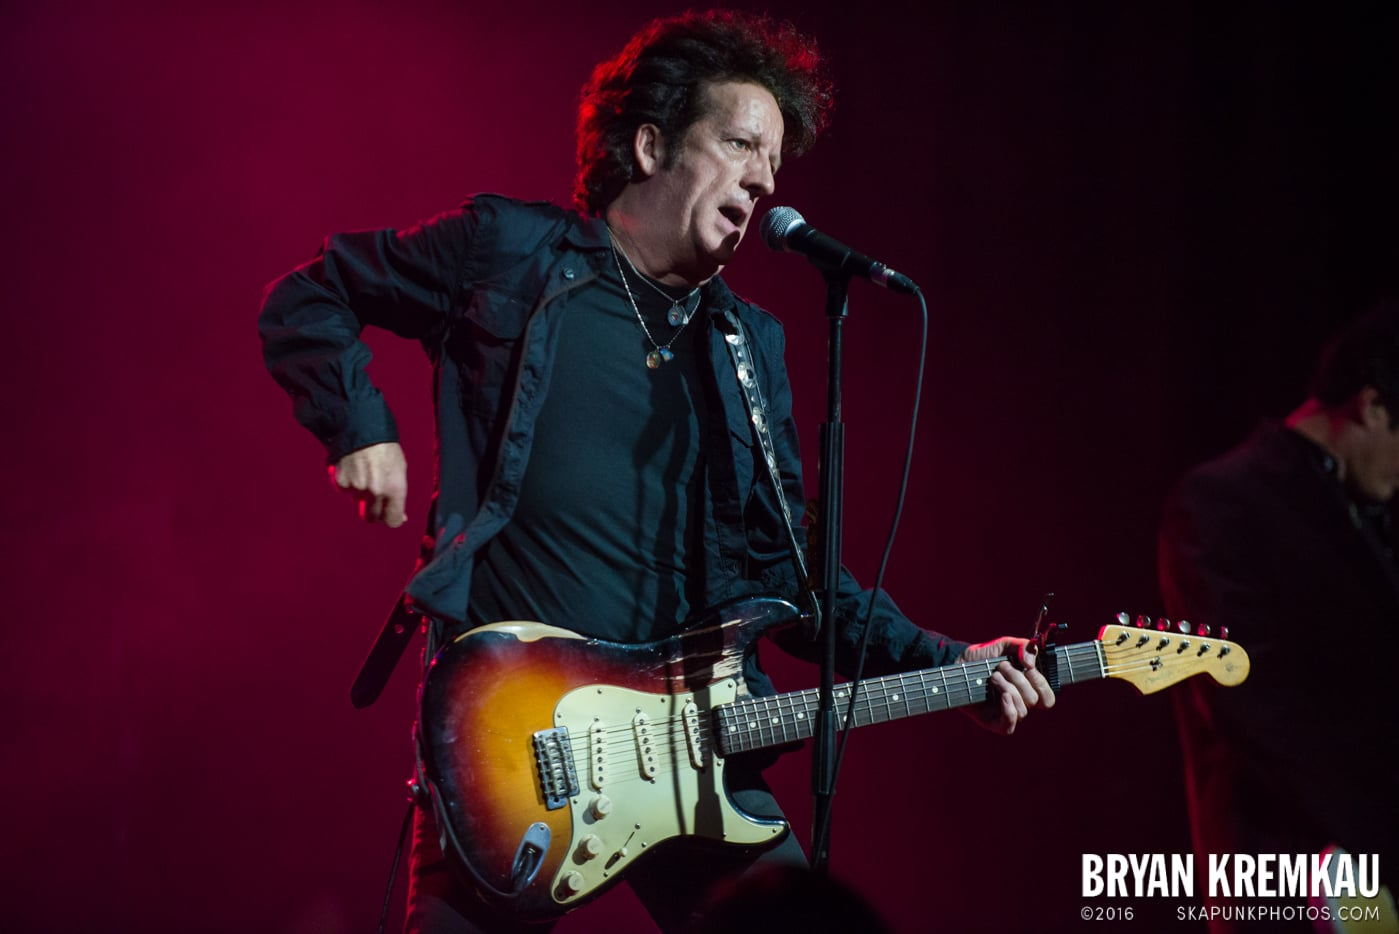 Willie Nile @ Highline Ballroom, NYC - 12.26.14 (62)